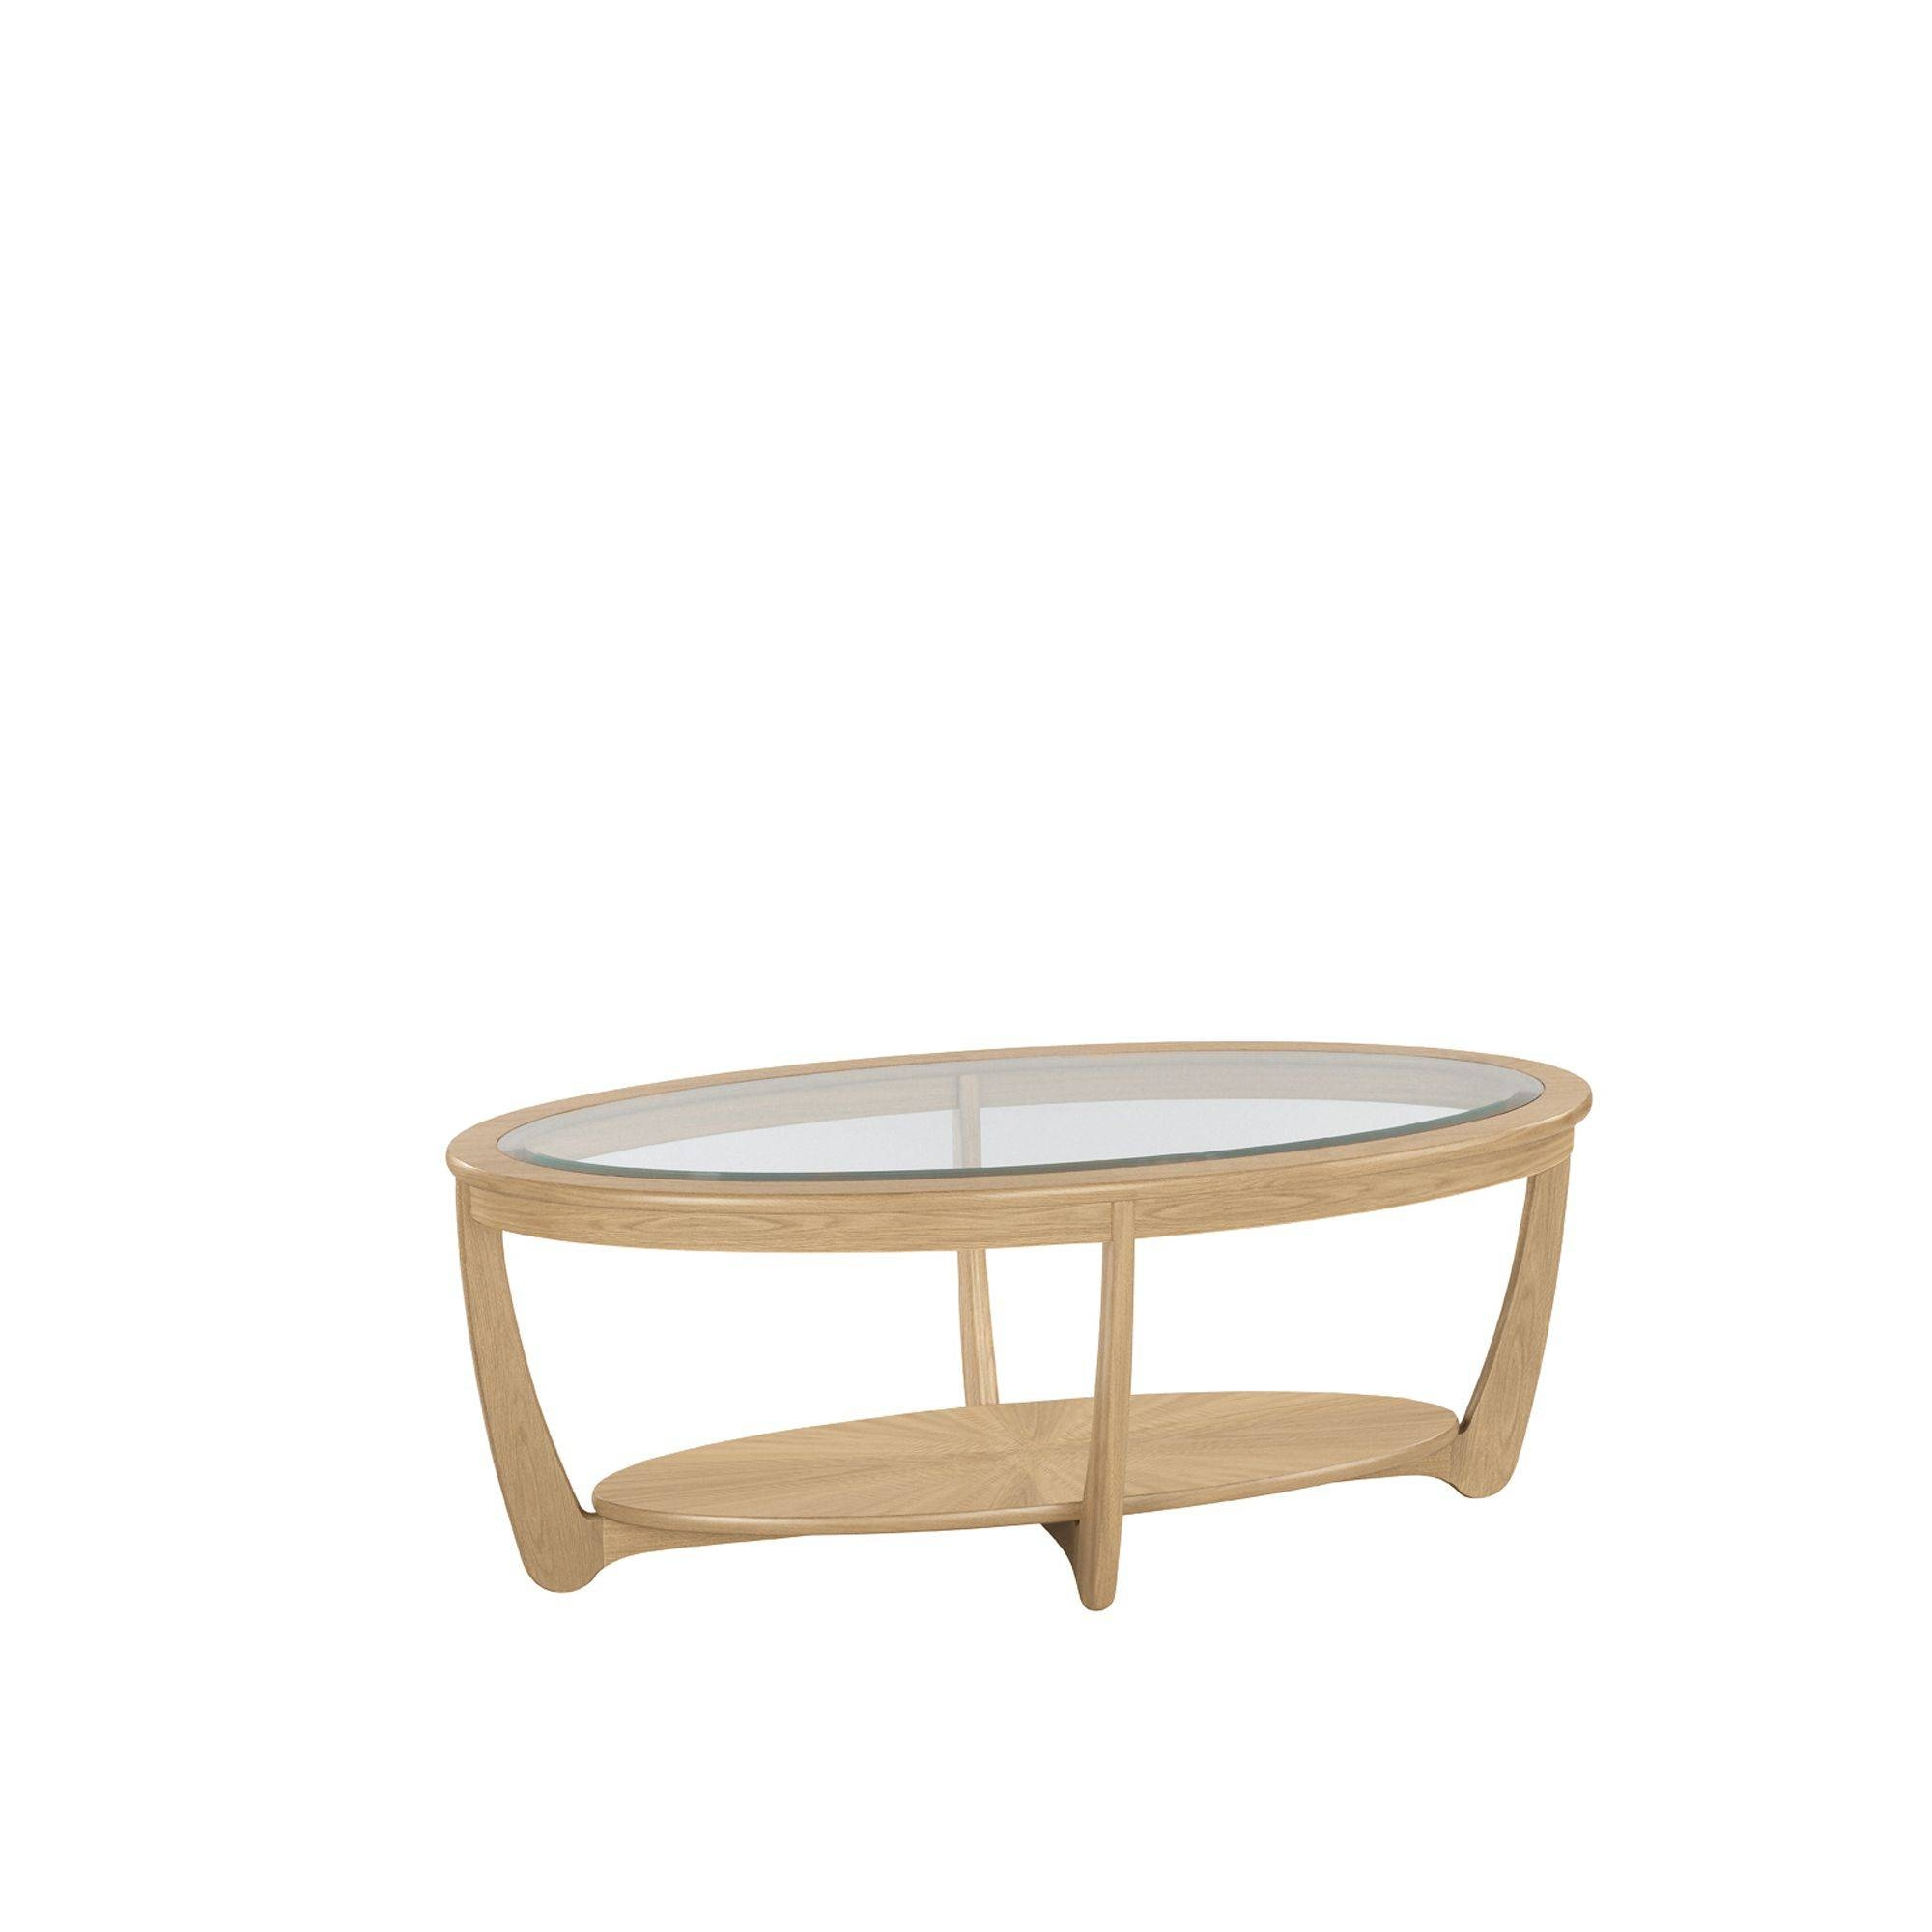 Nathan Shades Oak Glass Top Oval Coffee Table - Coffee Tables for Oak Coffee Table With Glass Top (Image 12 of 15)